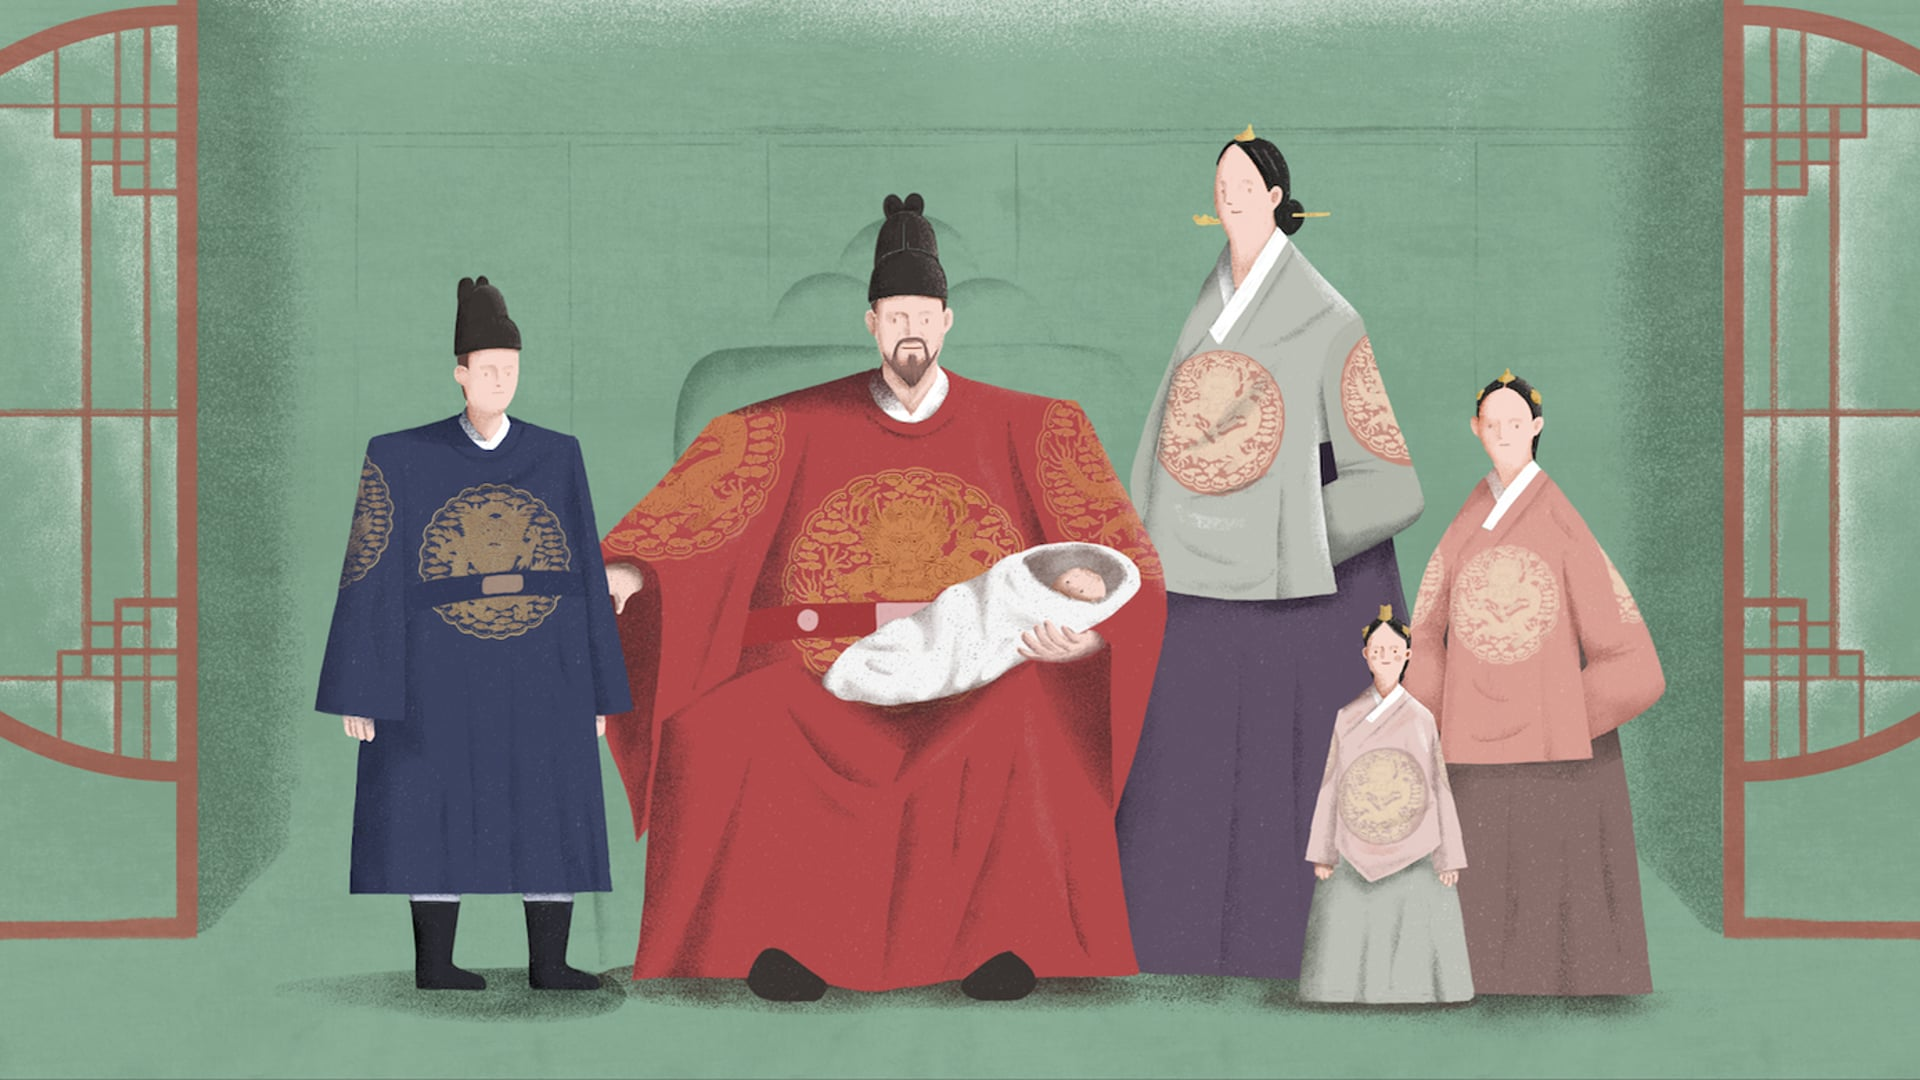 'A Wedding Day in Autumn,1837' Hangeul Materials related to Princess Deogon